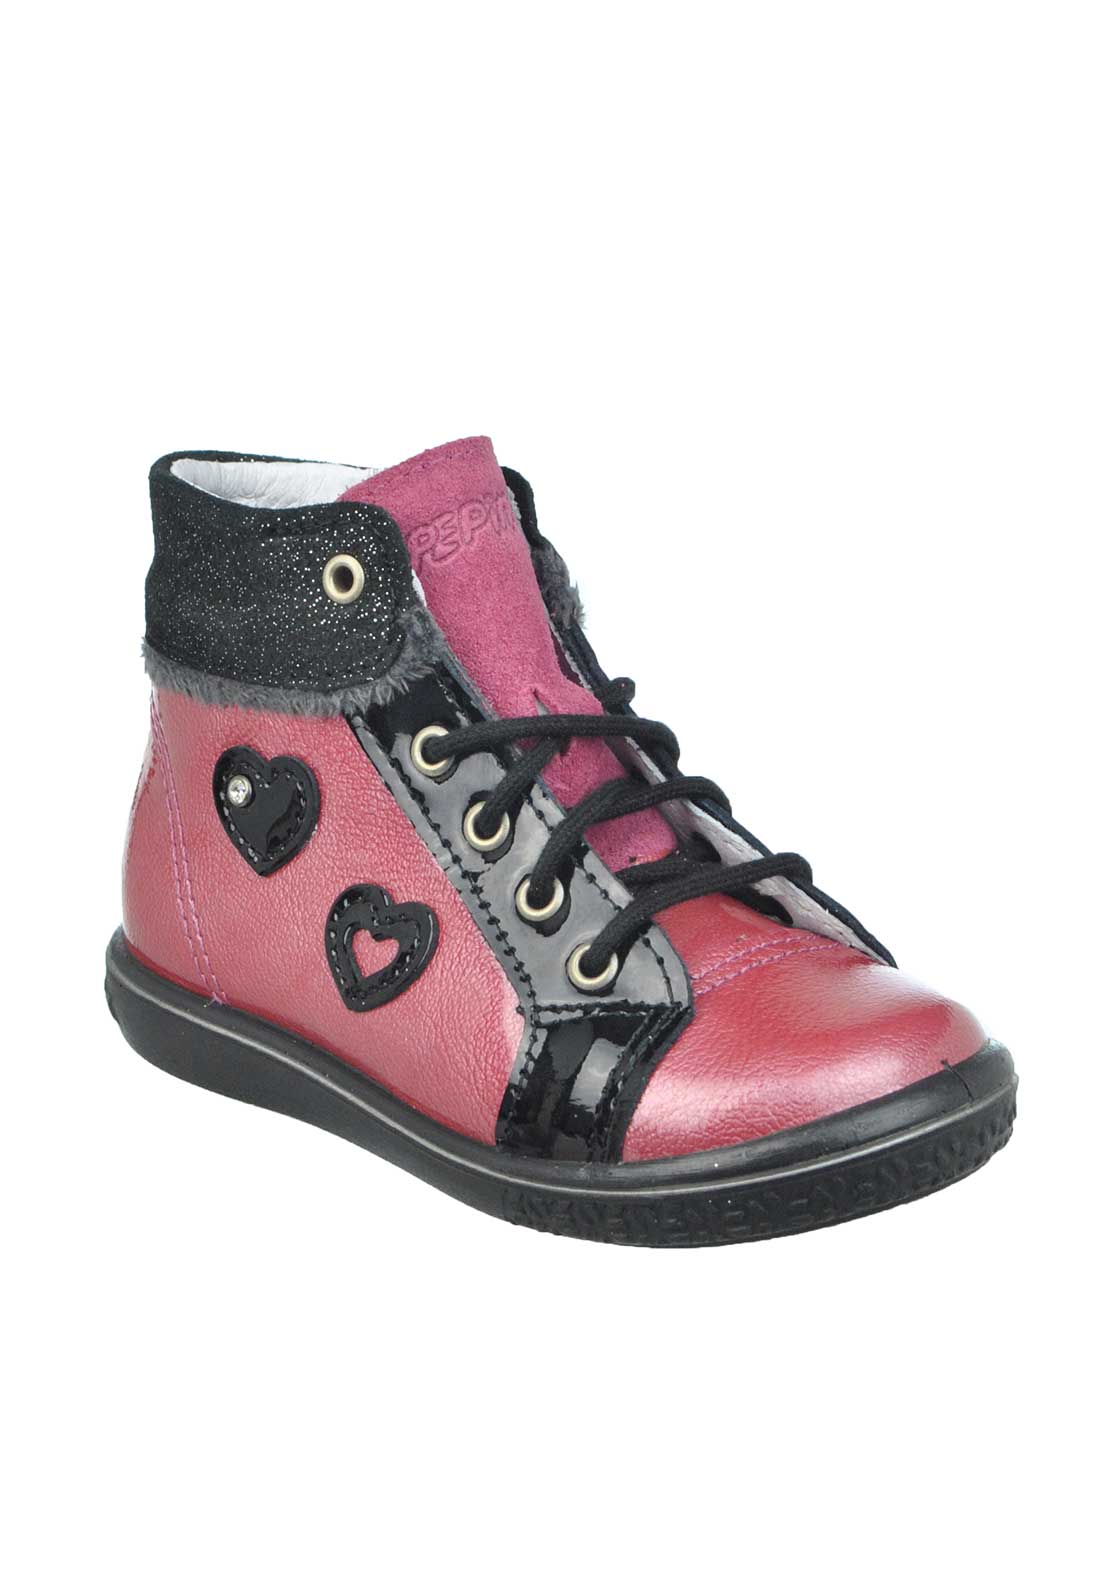 Pepino Baby Girls Chilbie Patent Heart Print Leather Boots, Pink